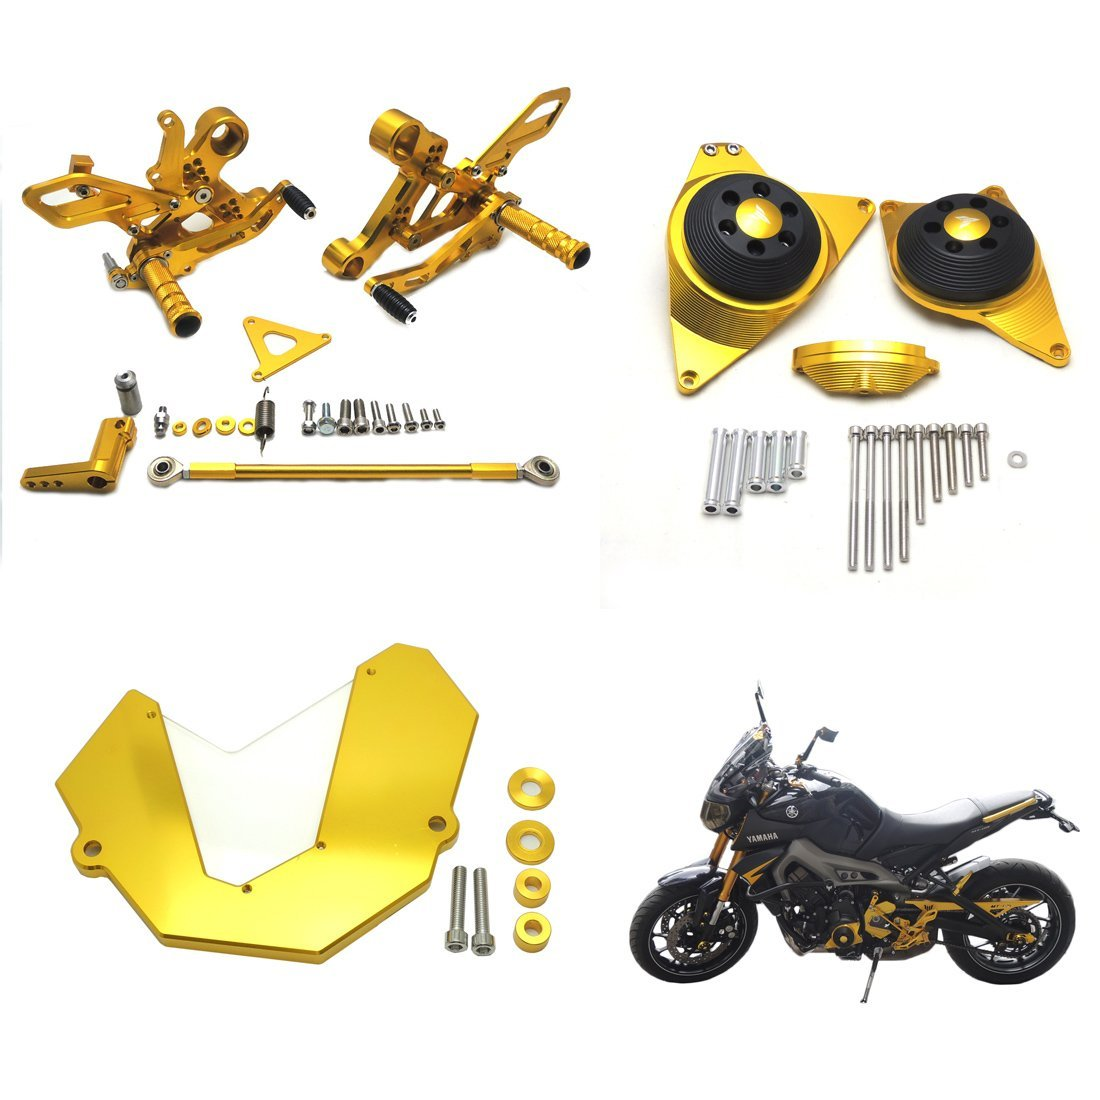 FZ09 Rearset Rear Set Foot Pegs Rest Pedal and Engine Guard Protector & Front Sprocket Cover for Yamaha FZ-09 2014-2015 Gold